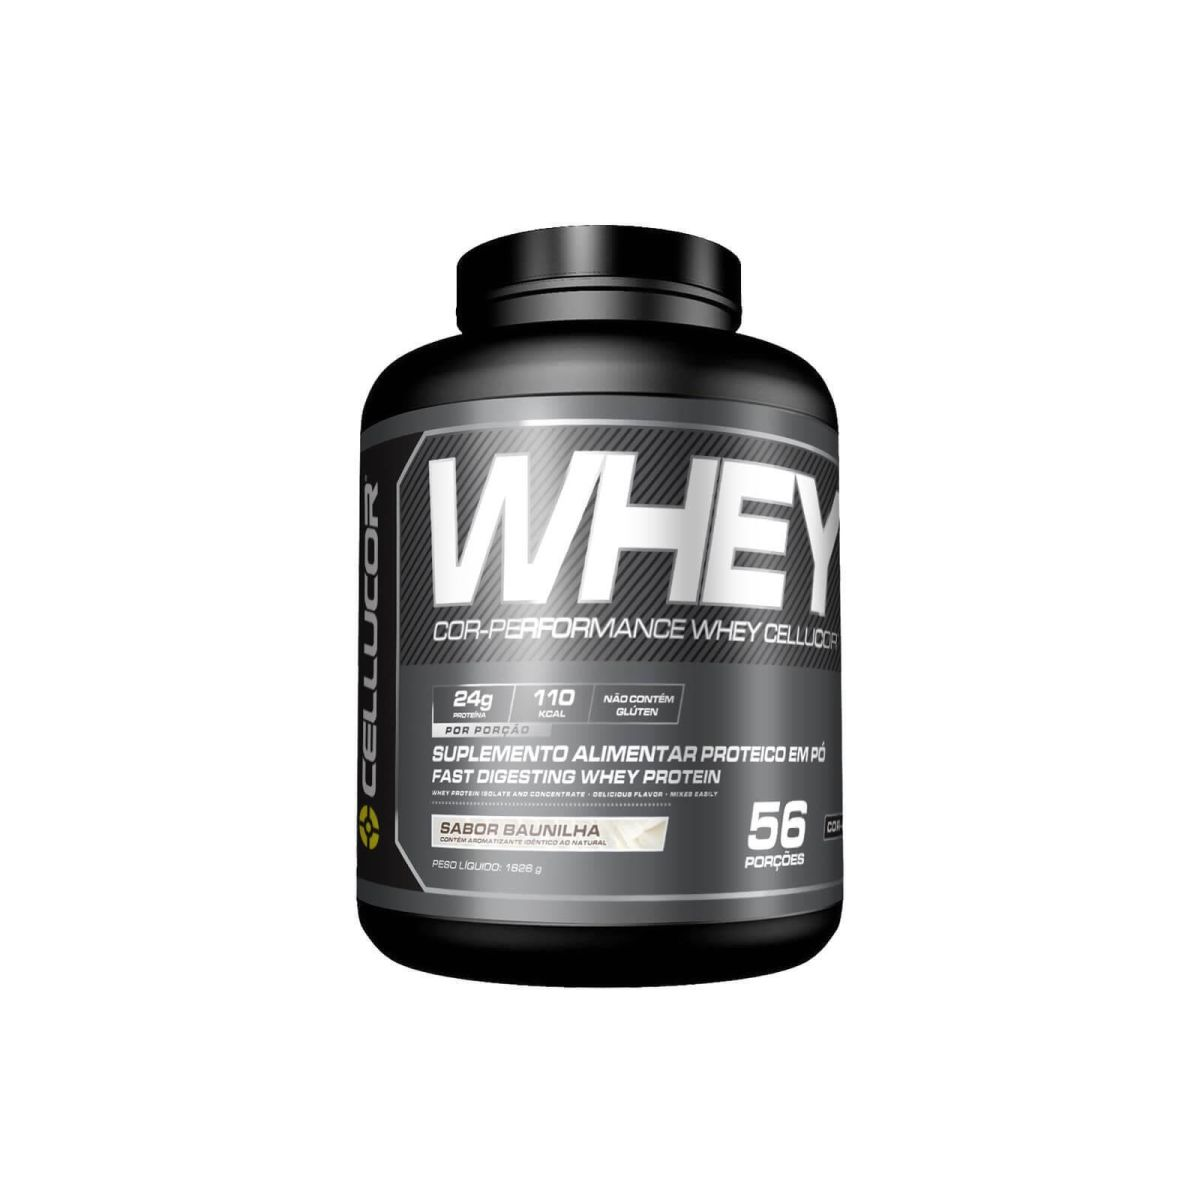 Whey Cor-Performance 4LBS - Cellucor